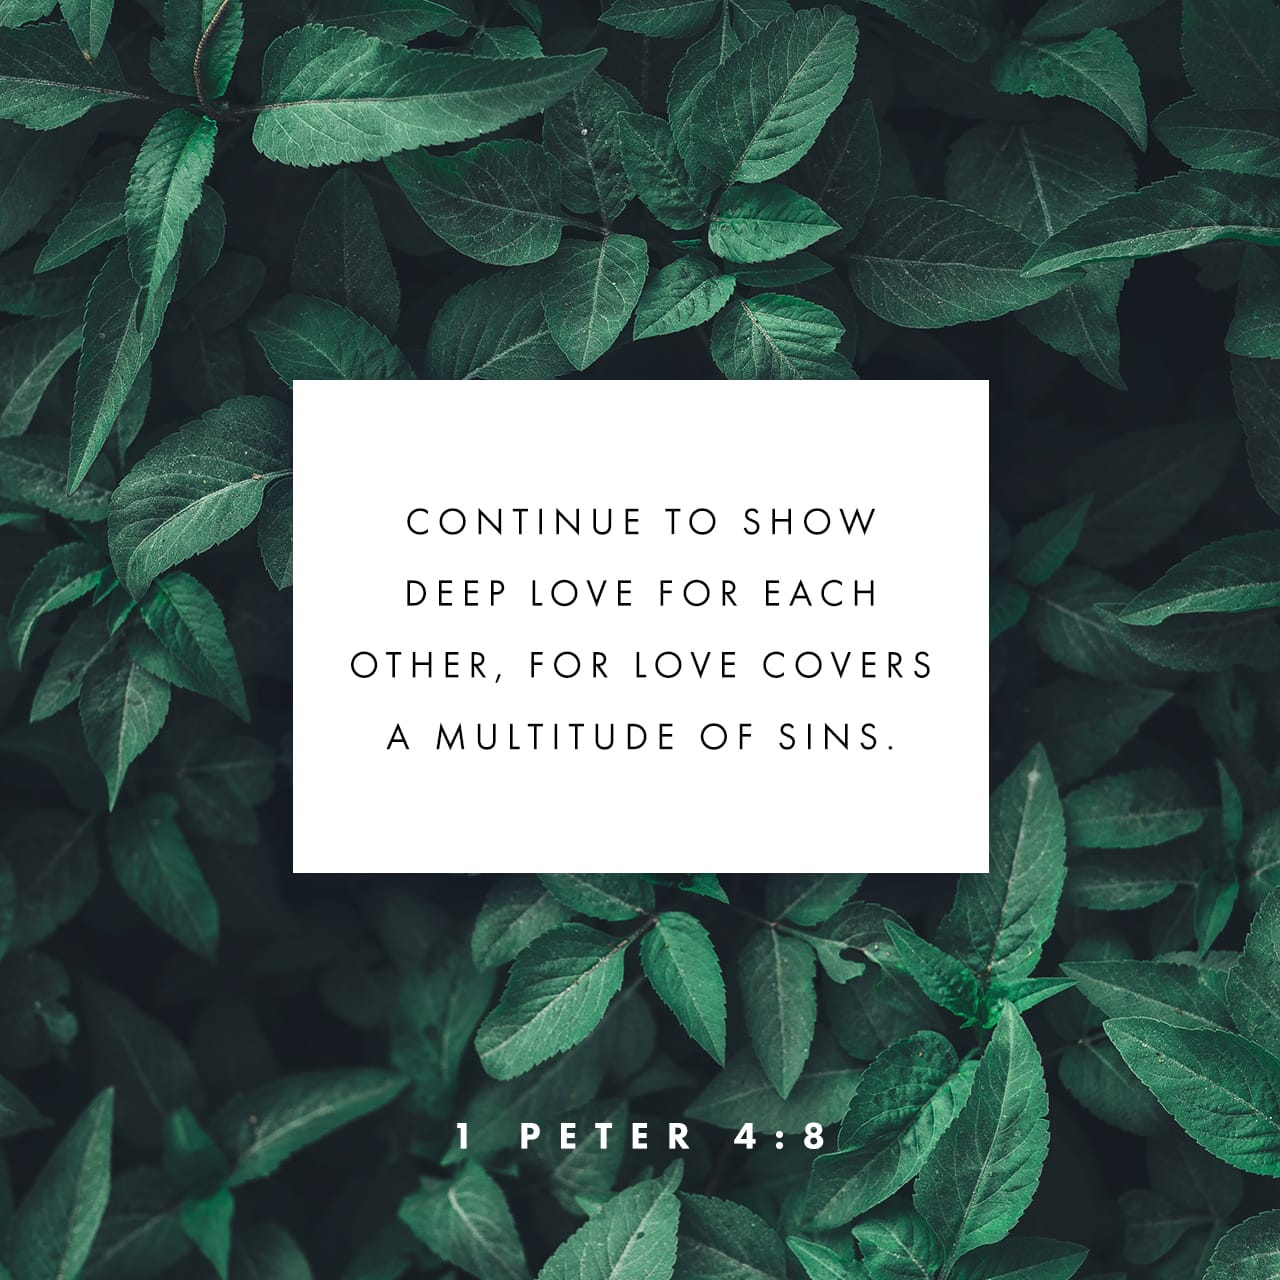 1 Peter 4:8 And above all things have fervent charity among yourselves: for charity shall cover the multitude of sins. | King James Version (KJV)